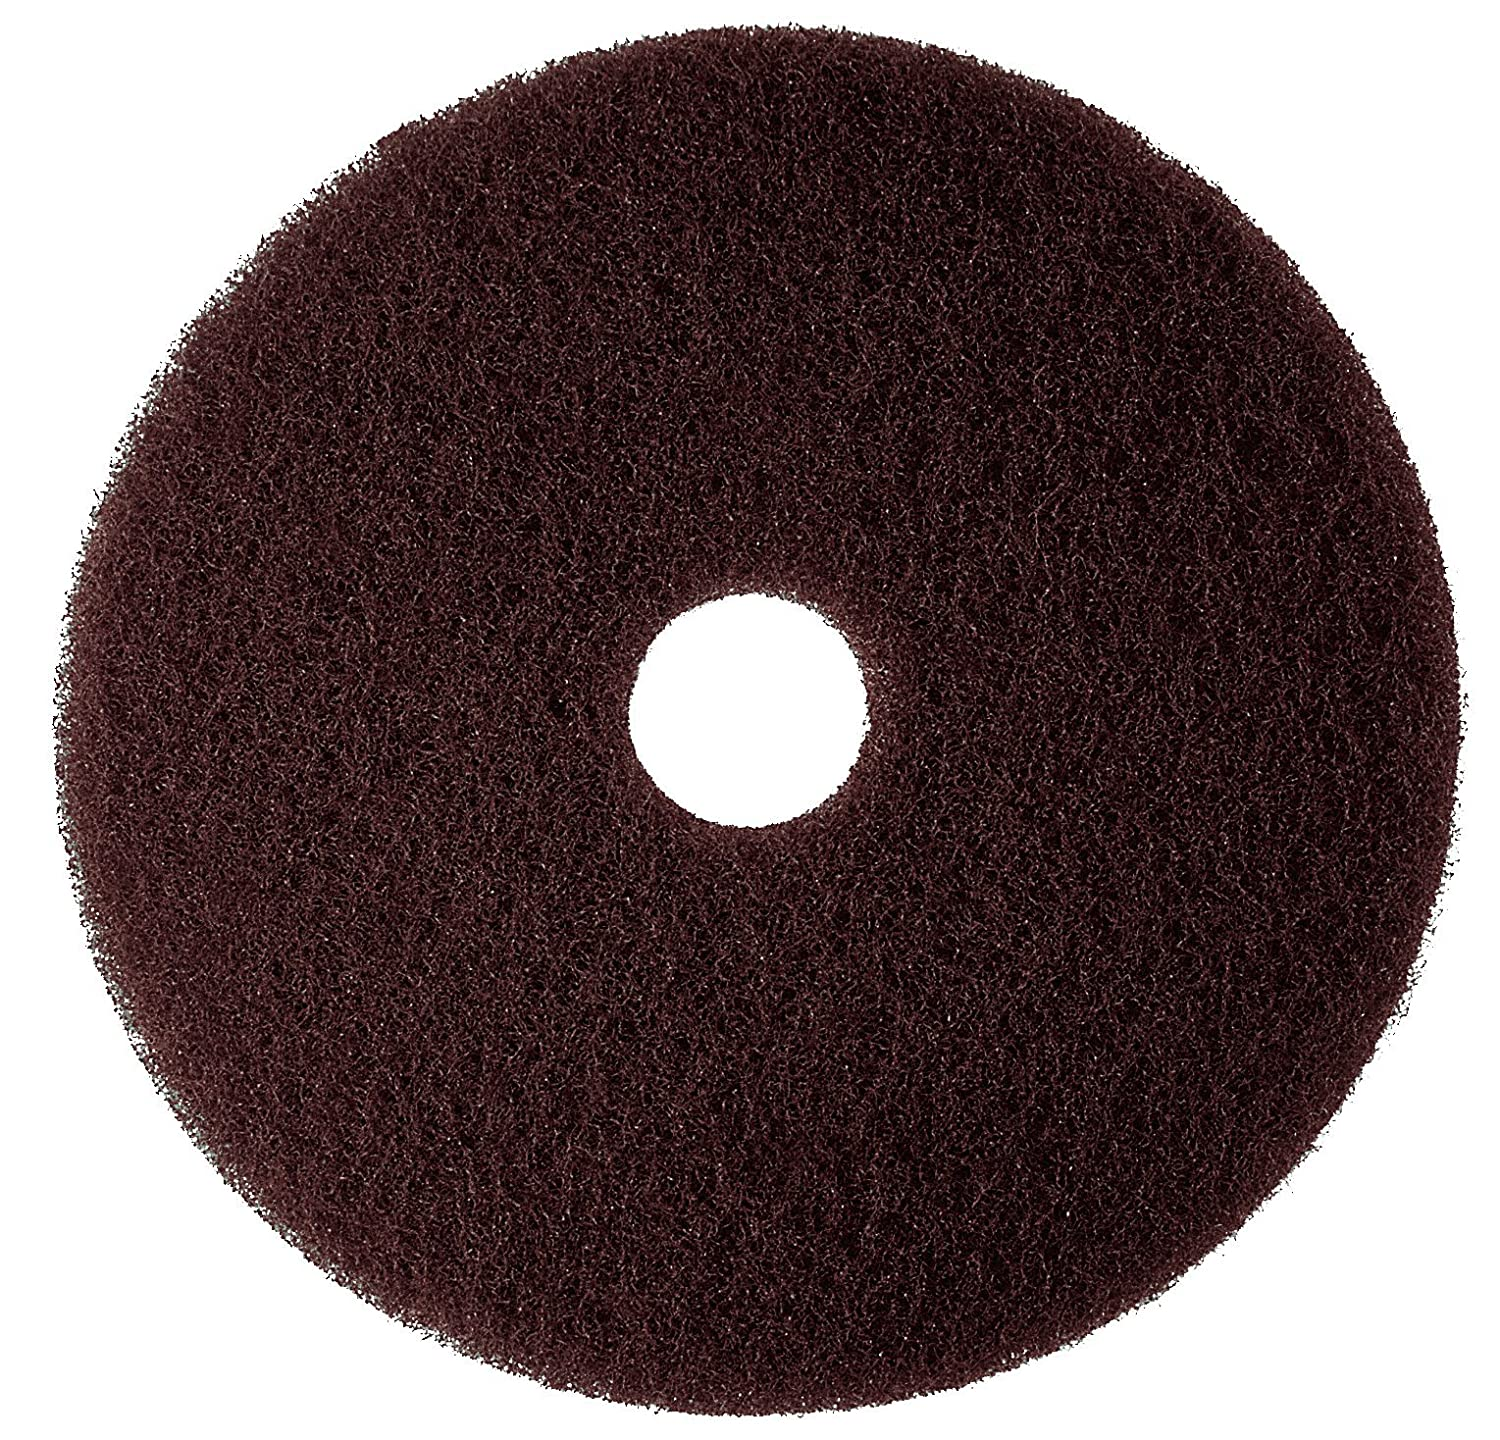 3M Brown Stripper Pad 7100, 12